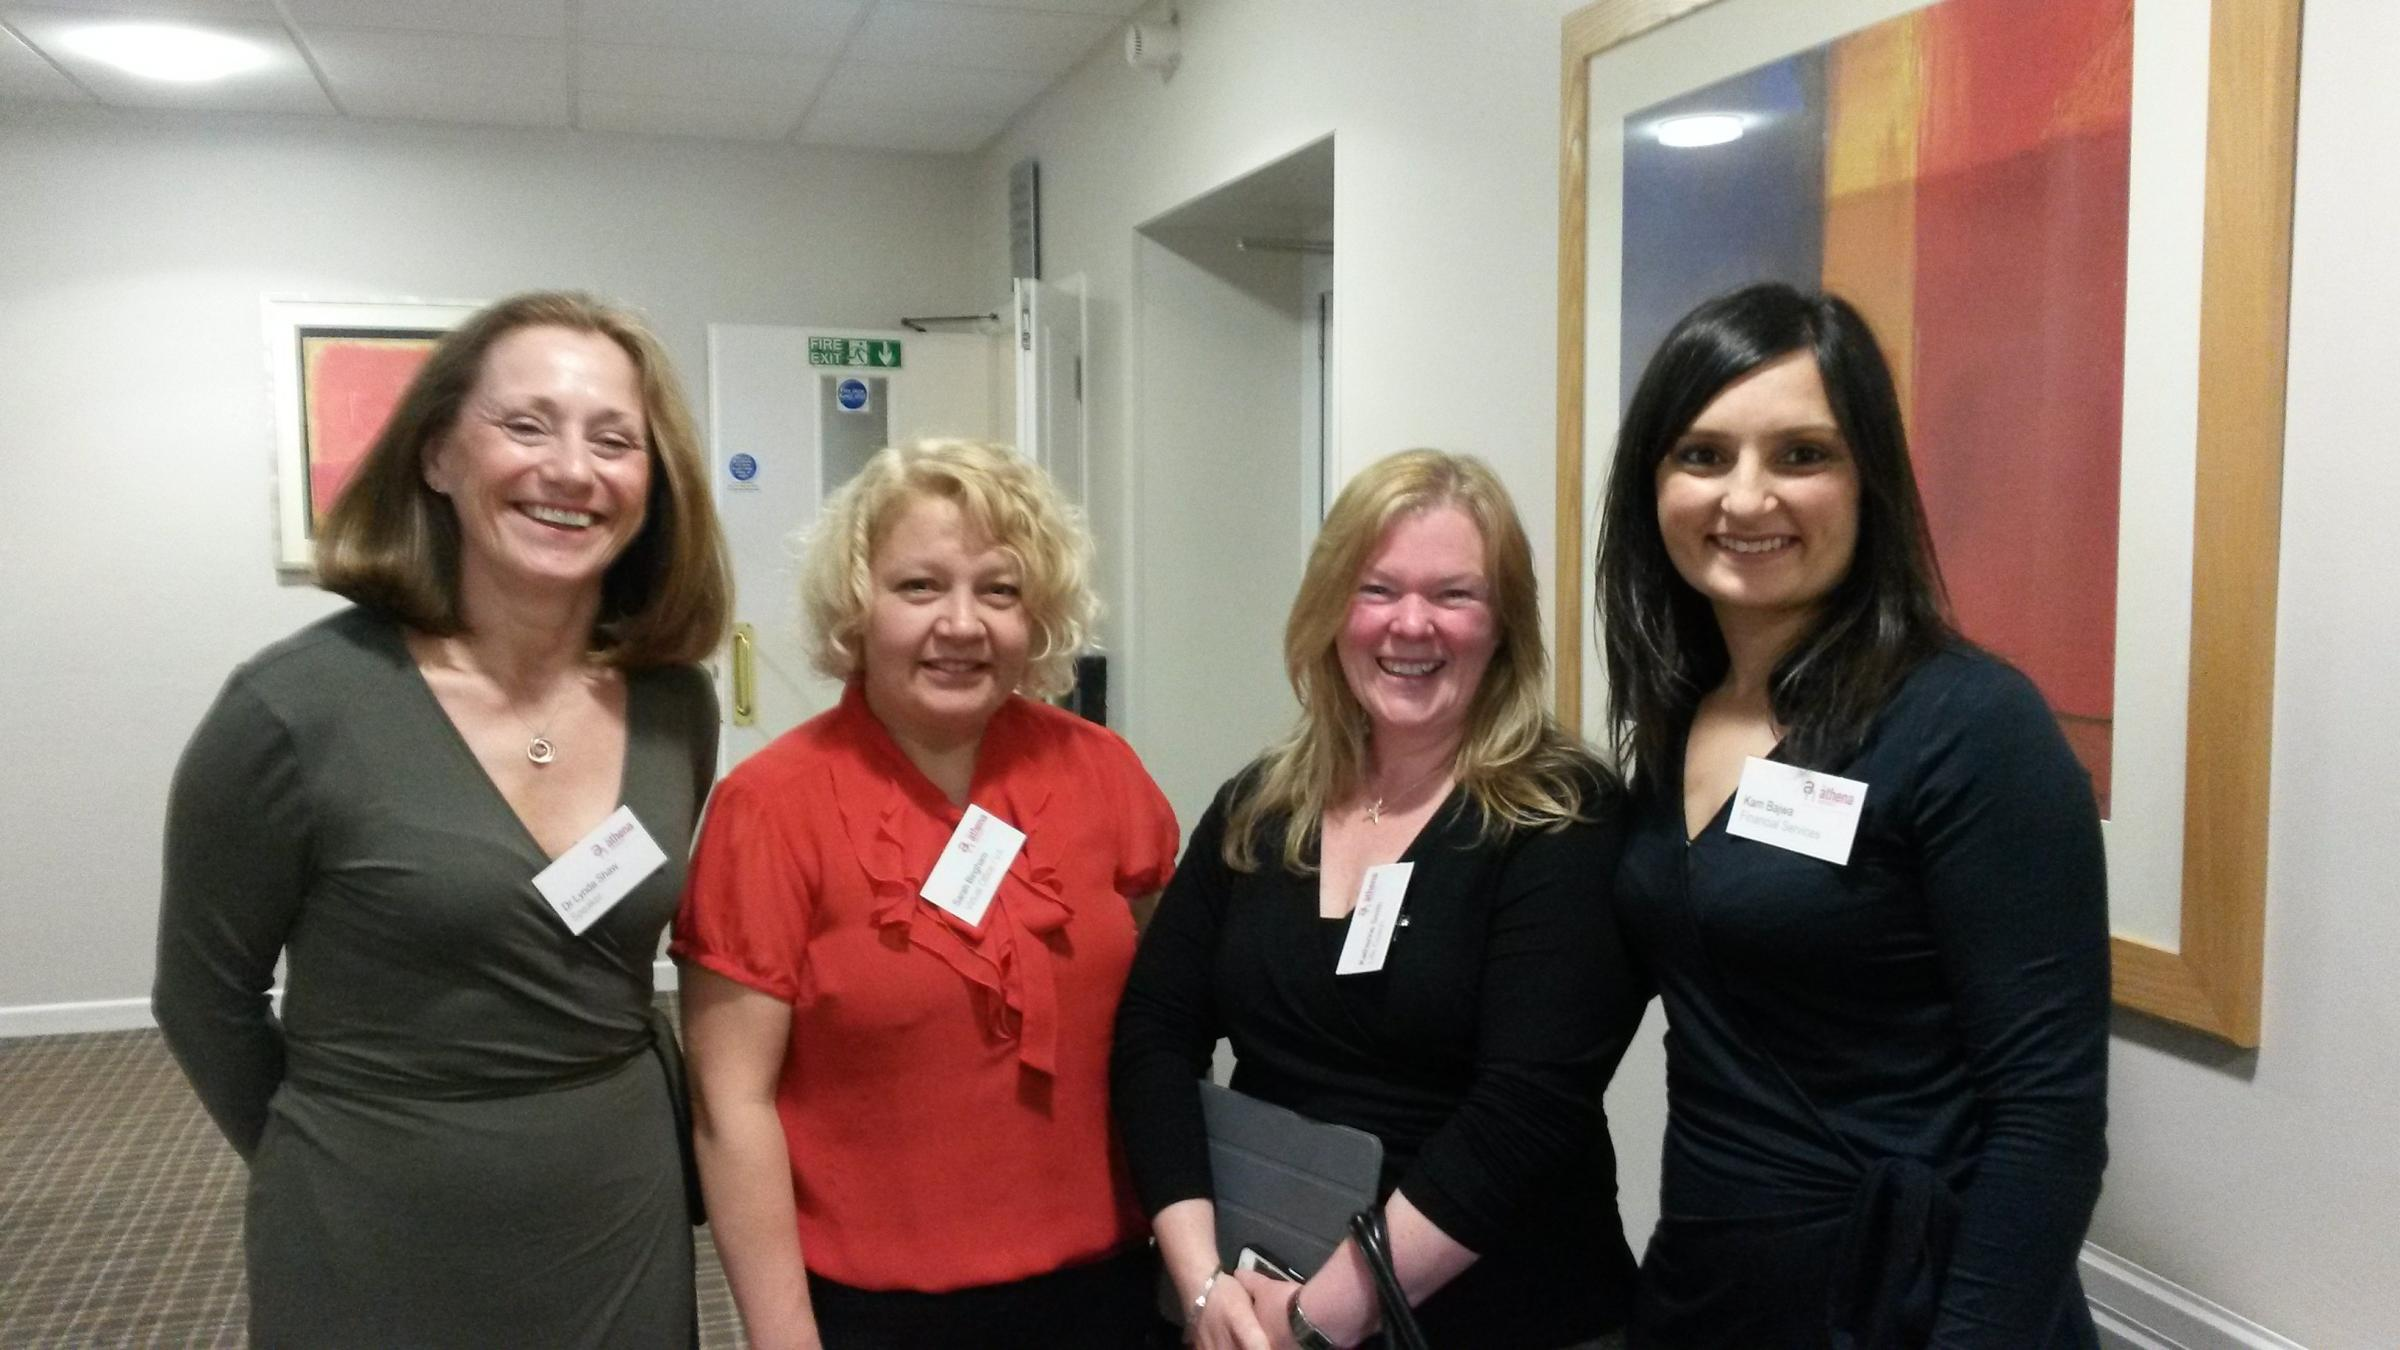 L-R: Guest speaker neuroscientist Dr Lynda Shaw, with Athena Network members Sarah Bingham, Kathrine Smith and Kam Bajwa